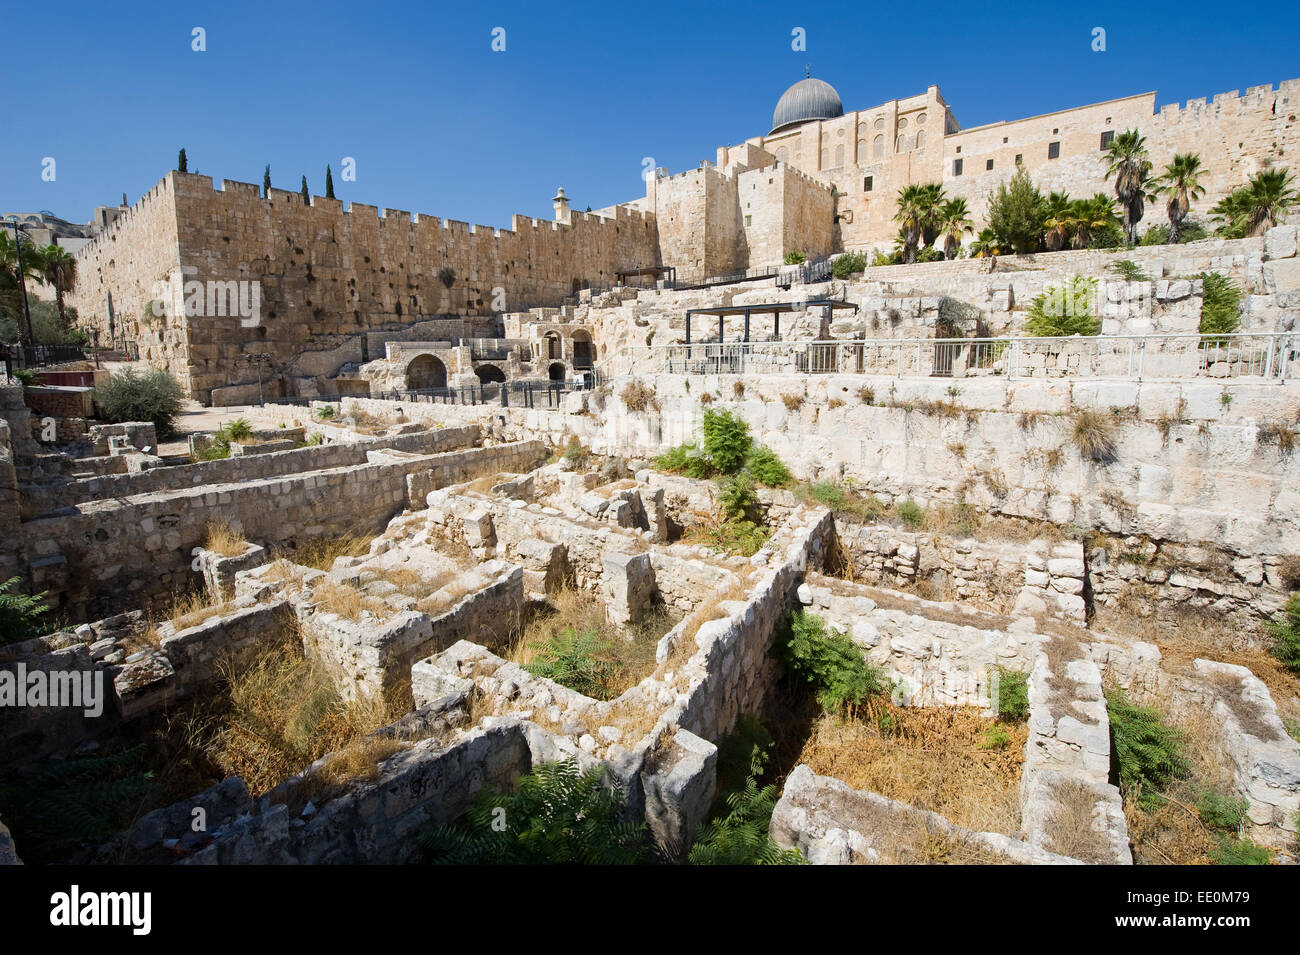 Ruins and remains in 'the ophel archaeological garden' just south of the temple mount in Jerusalem, in the - Stock Image